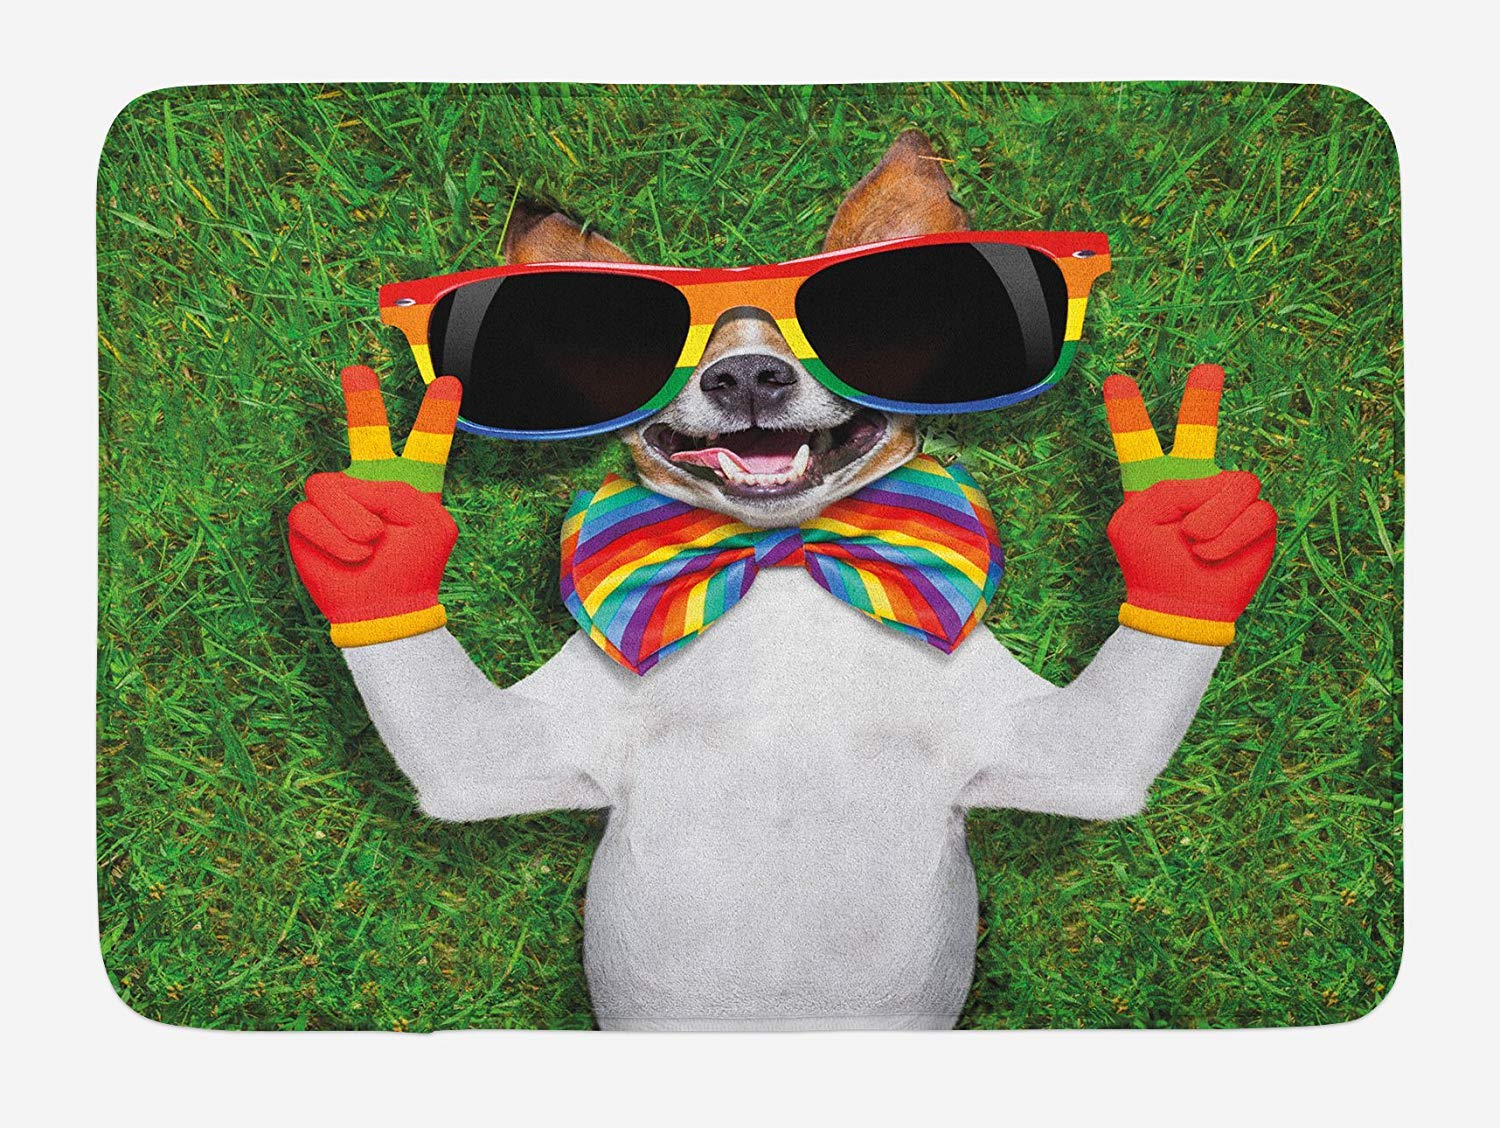 TAQATS Pride Bath Mat, Funny Face Gay Dog Lying on Green Grass with Peace Signs and Giant Sunglasses Humor, Plush Bathroom Decor Mat with Non Slip Backing, 23.6 W X 15.7 W Inches, Multicolor